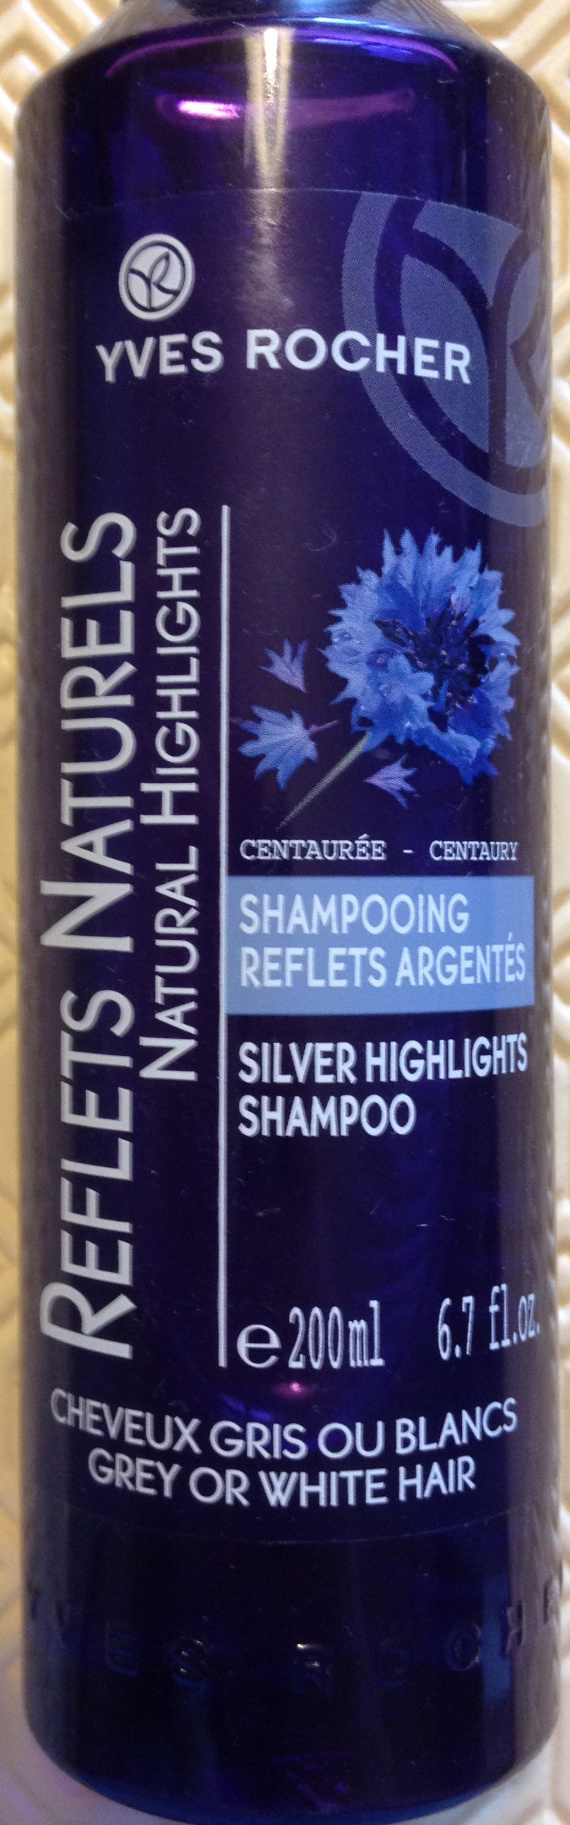 Shampooing reflets argentés - Product - fr